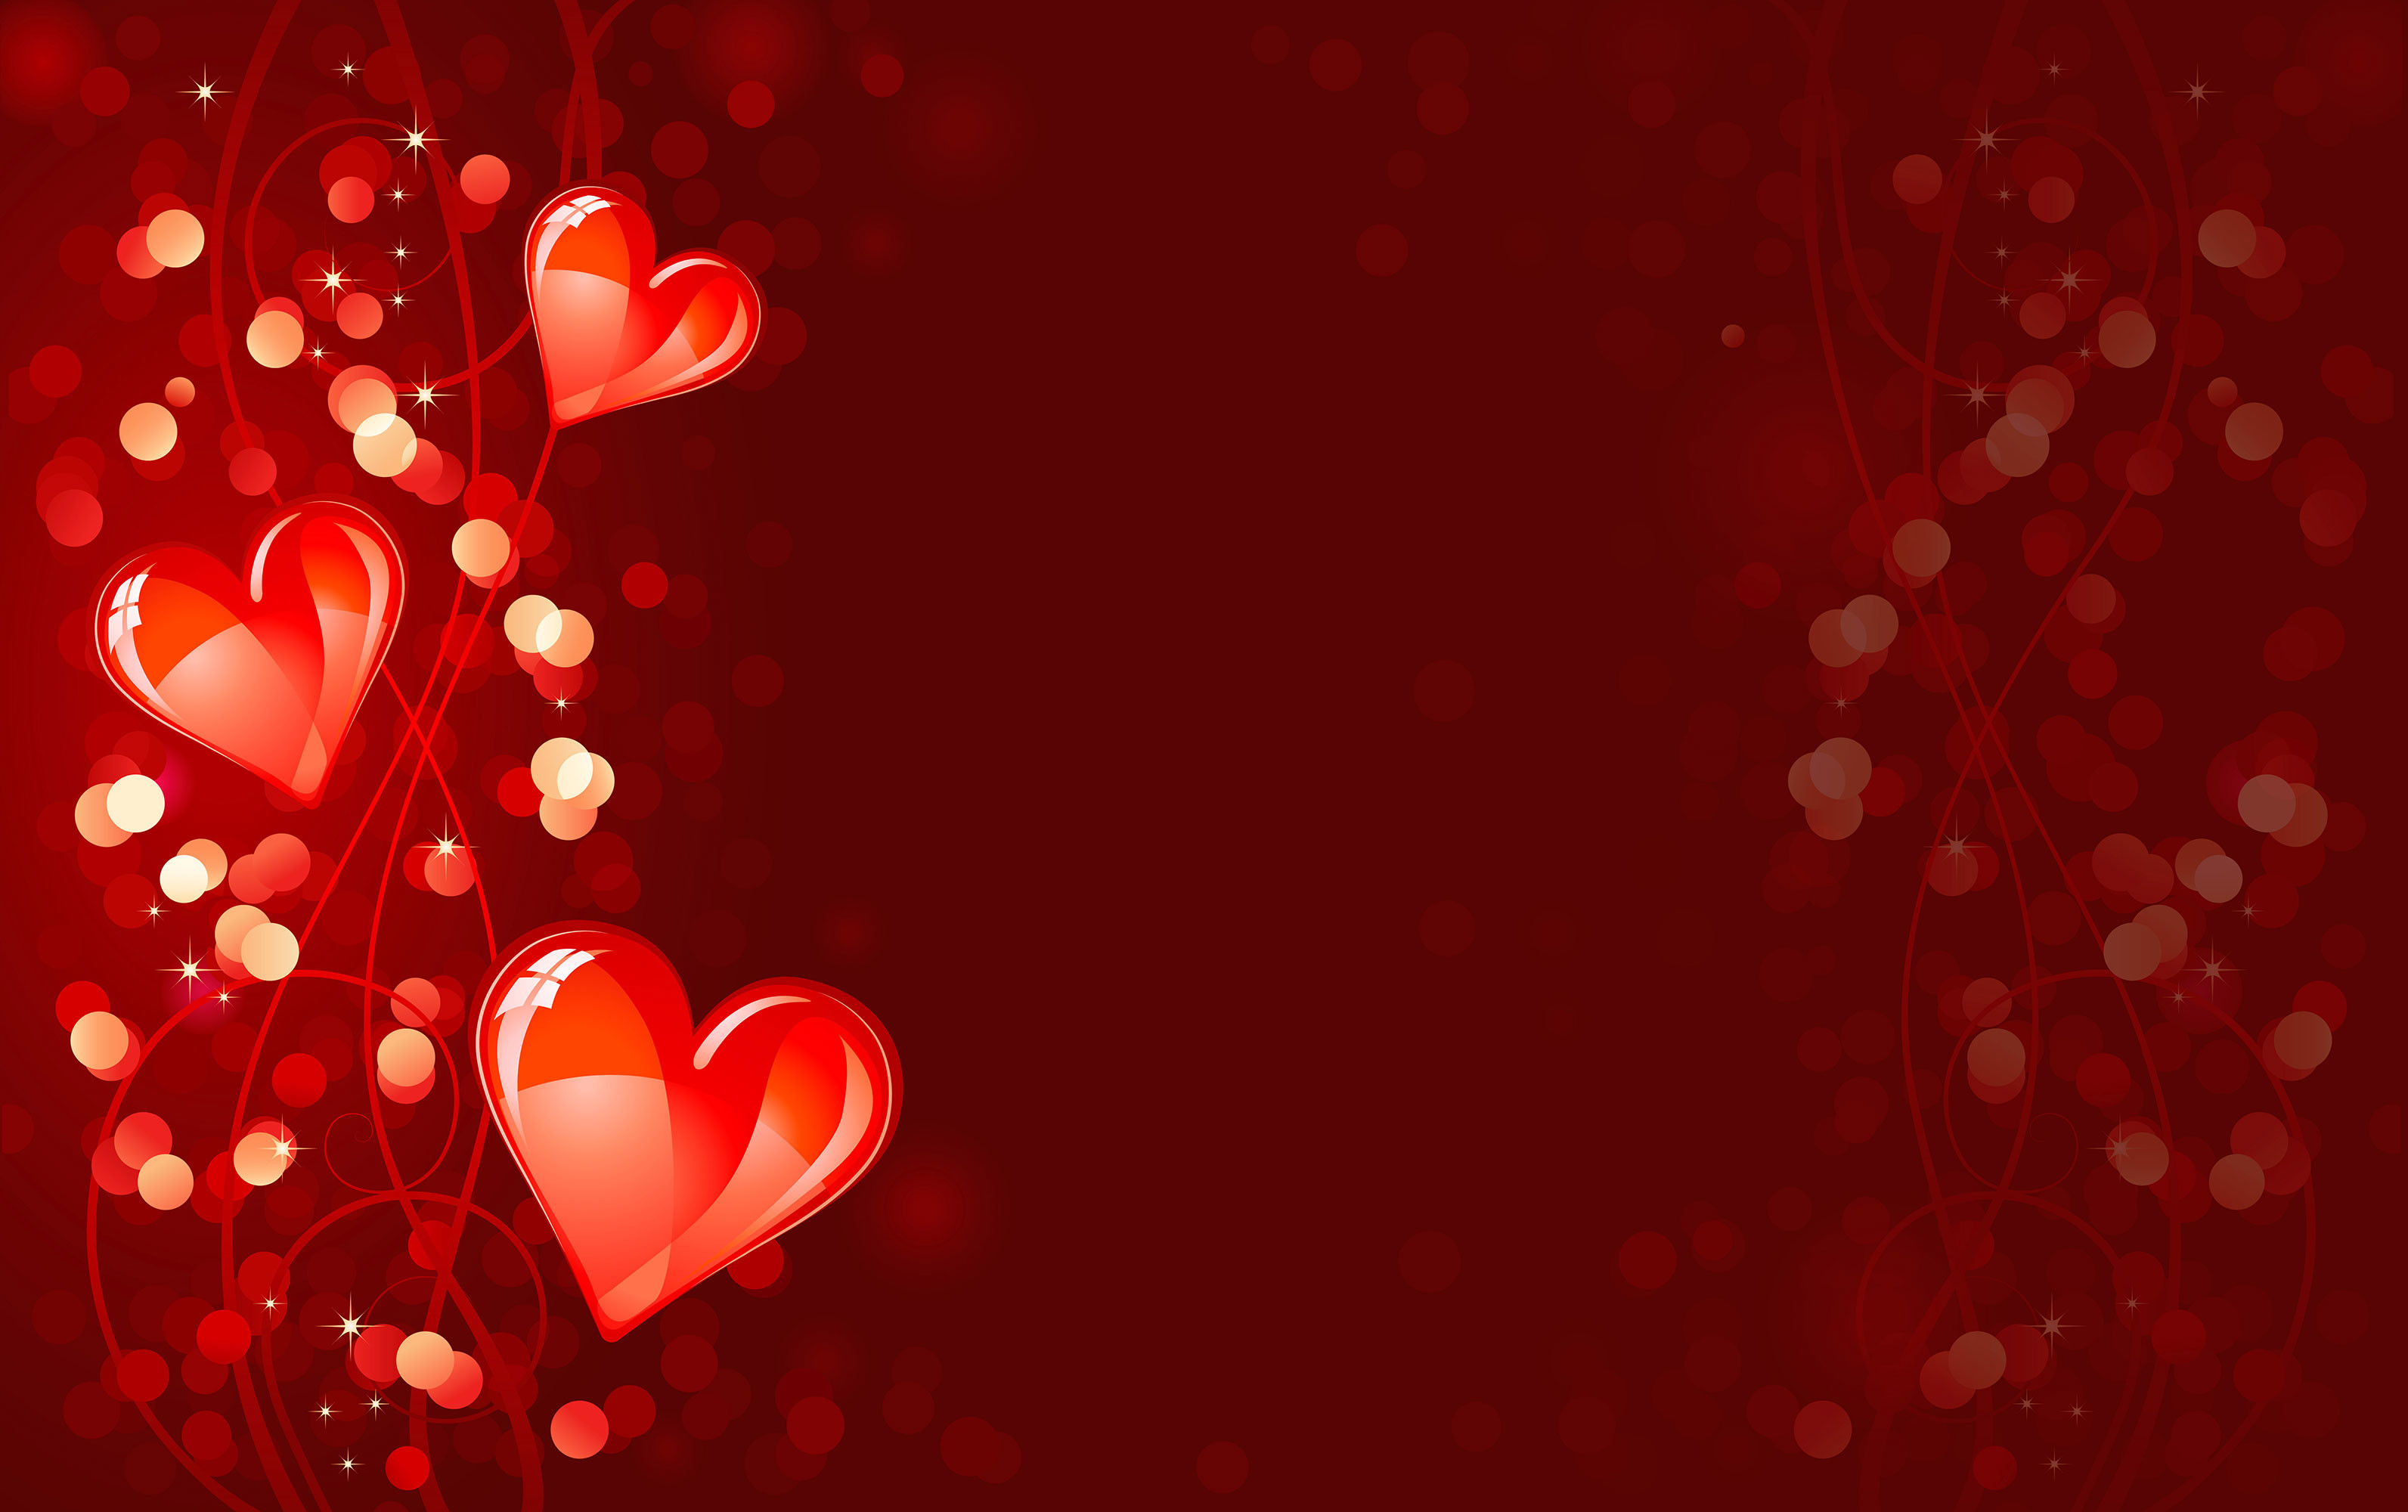 … valentines wallpapers hd pixelstalk net …